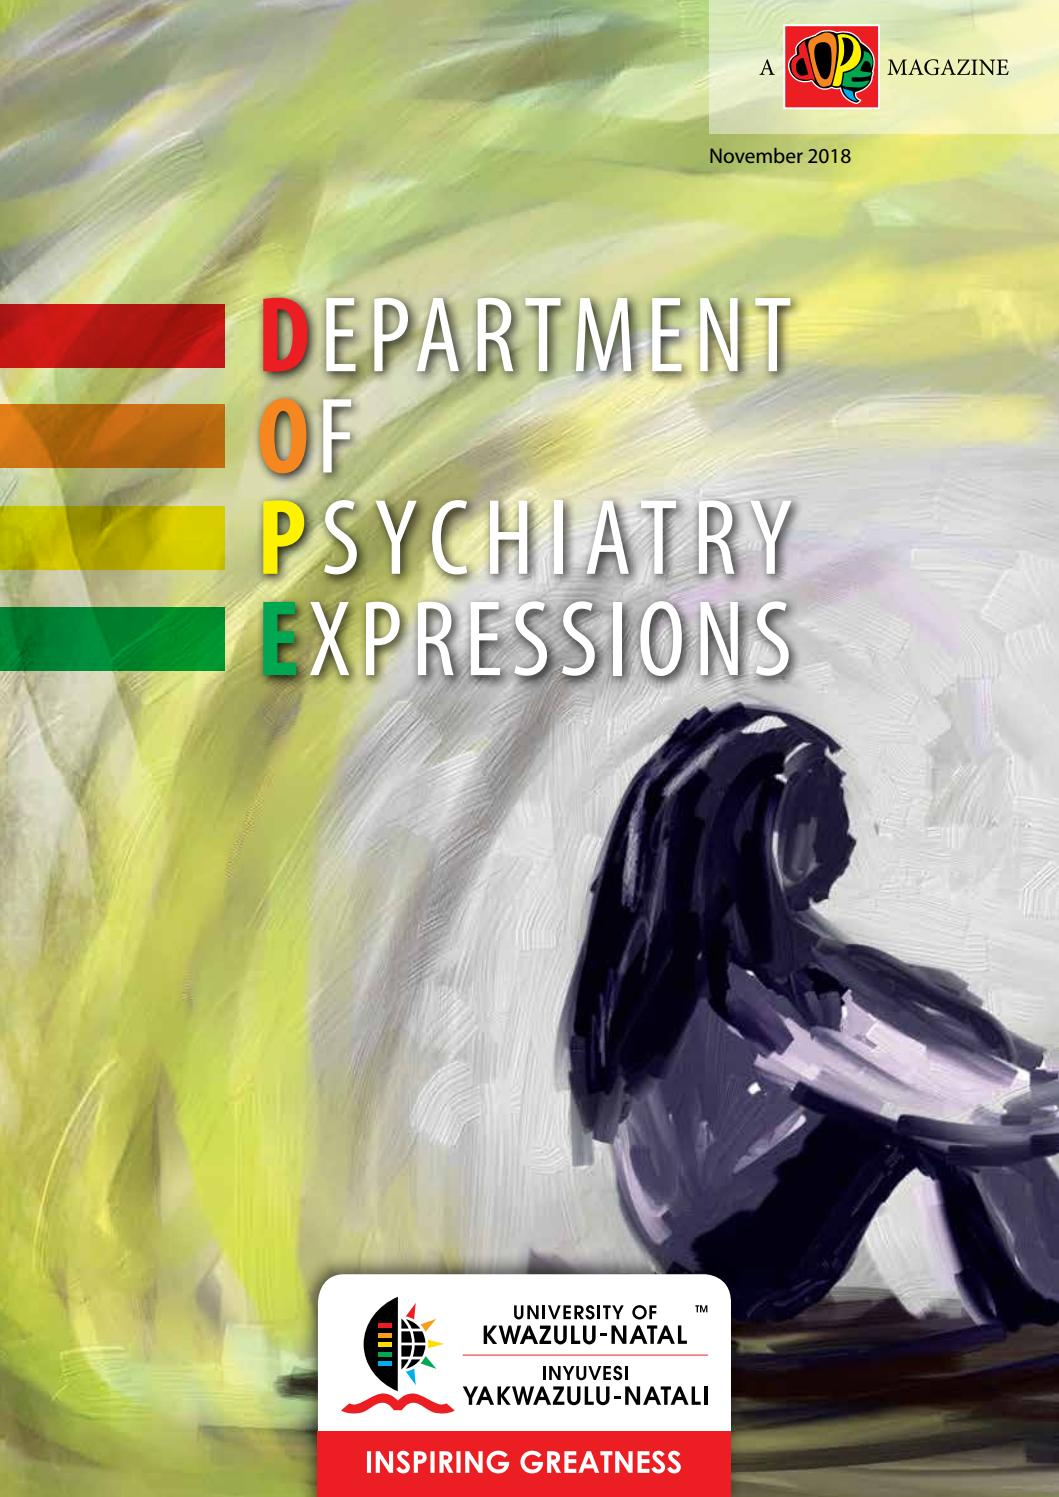 Ukzn Department Of Psychiatry Expressions By Naseemacassimjee Issuu